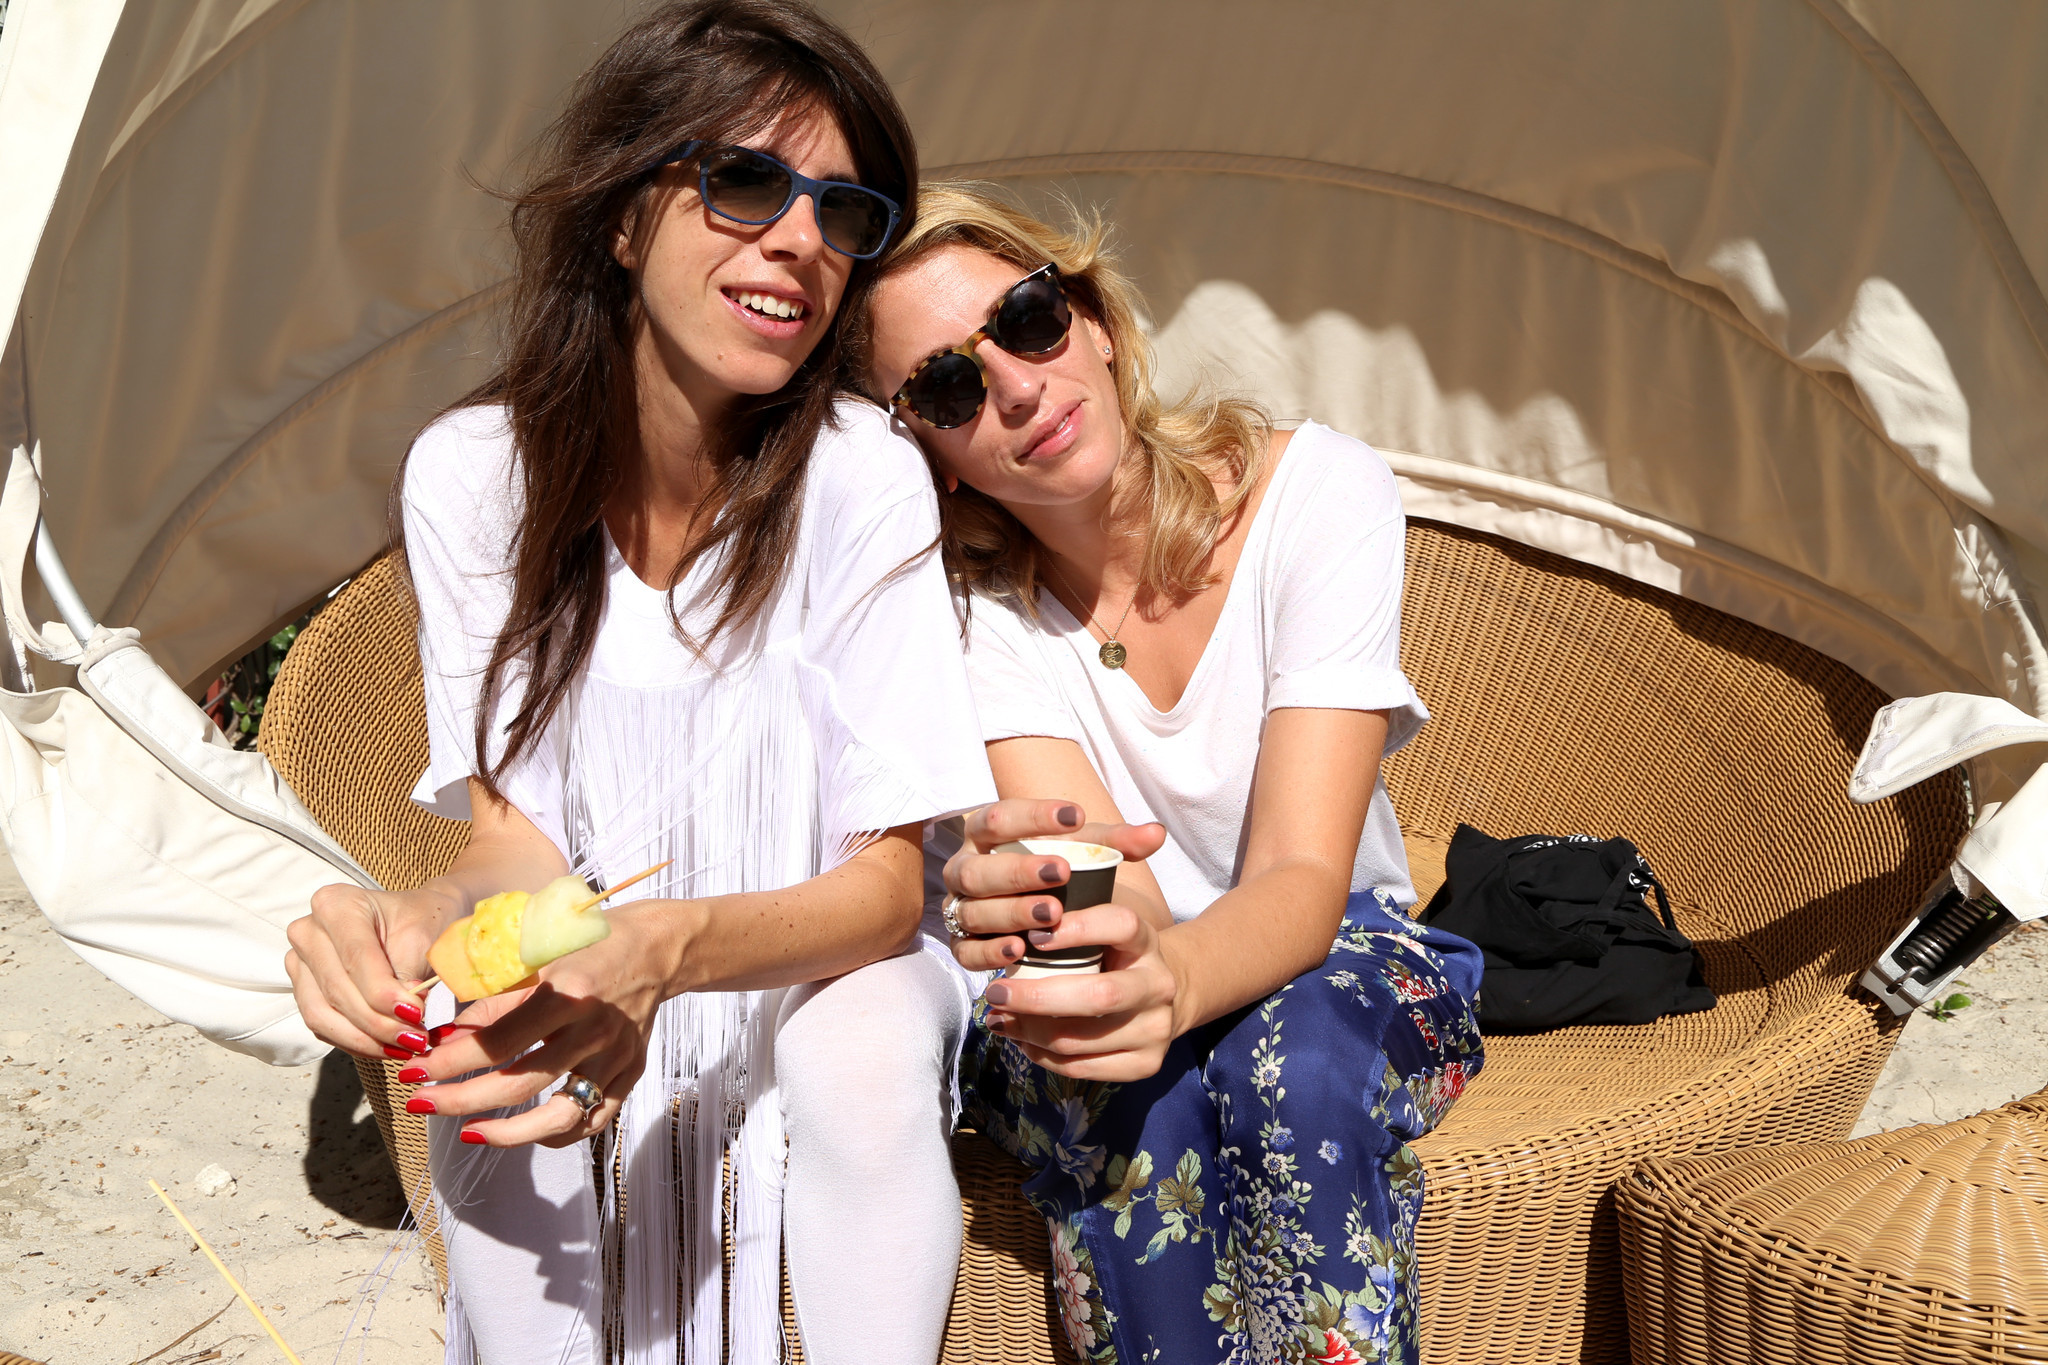 PHOTOS: The fashionistas of Art Basel - Aurelia Musumeci Greco and Celeste Morini